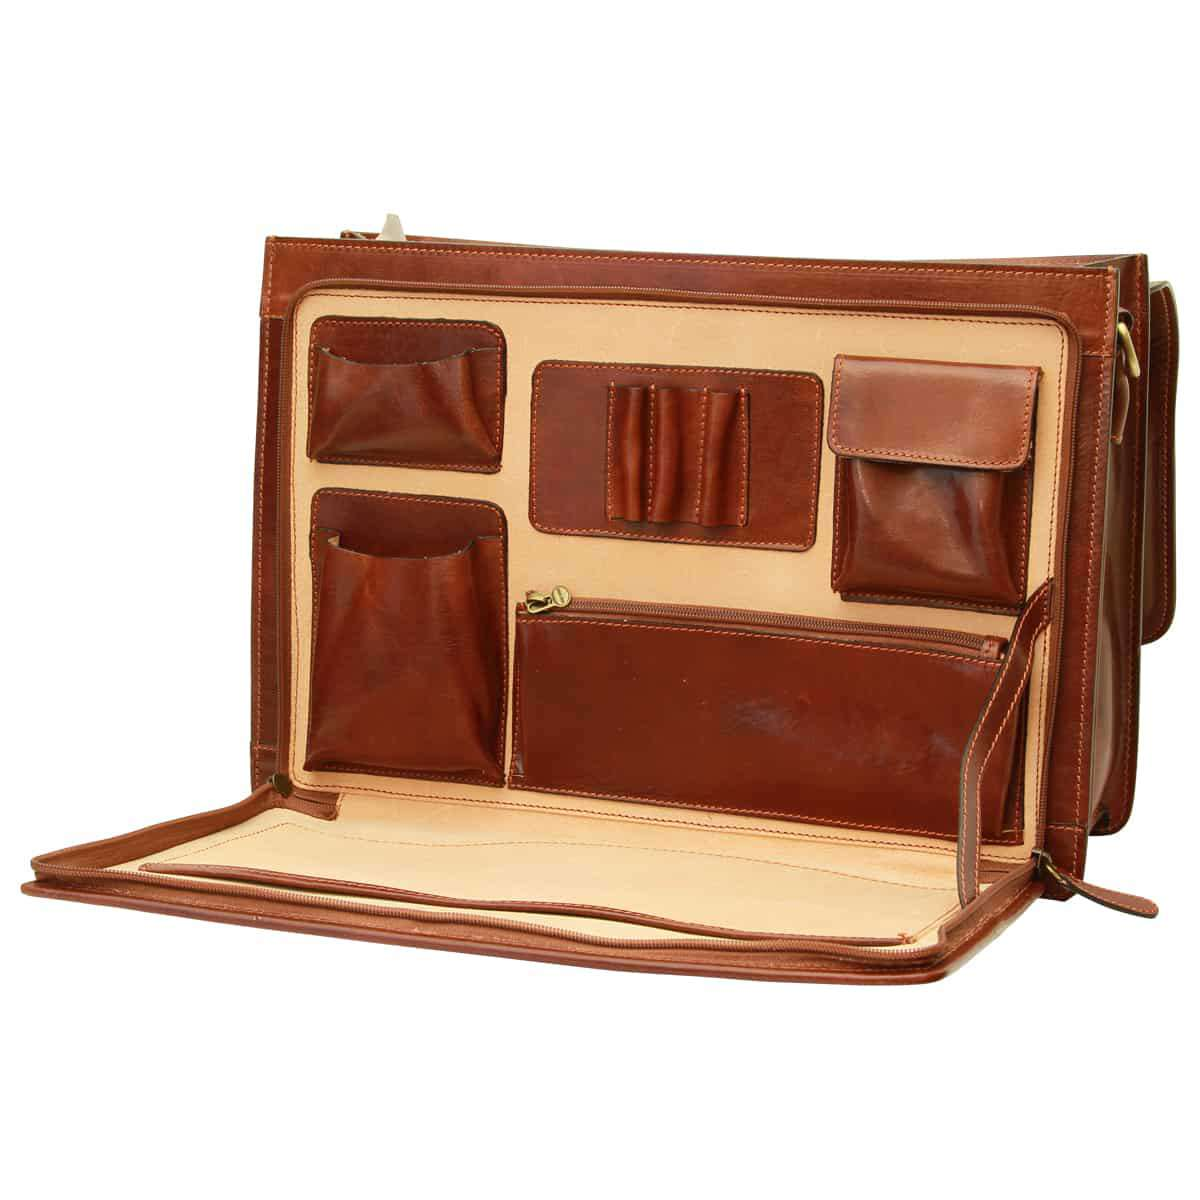 Cowhide leather briefcase - Brown | 059805MA UK | Old Angler Firenze